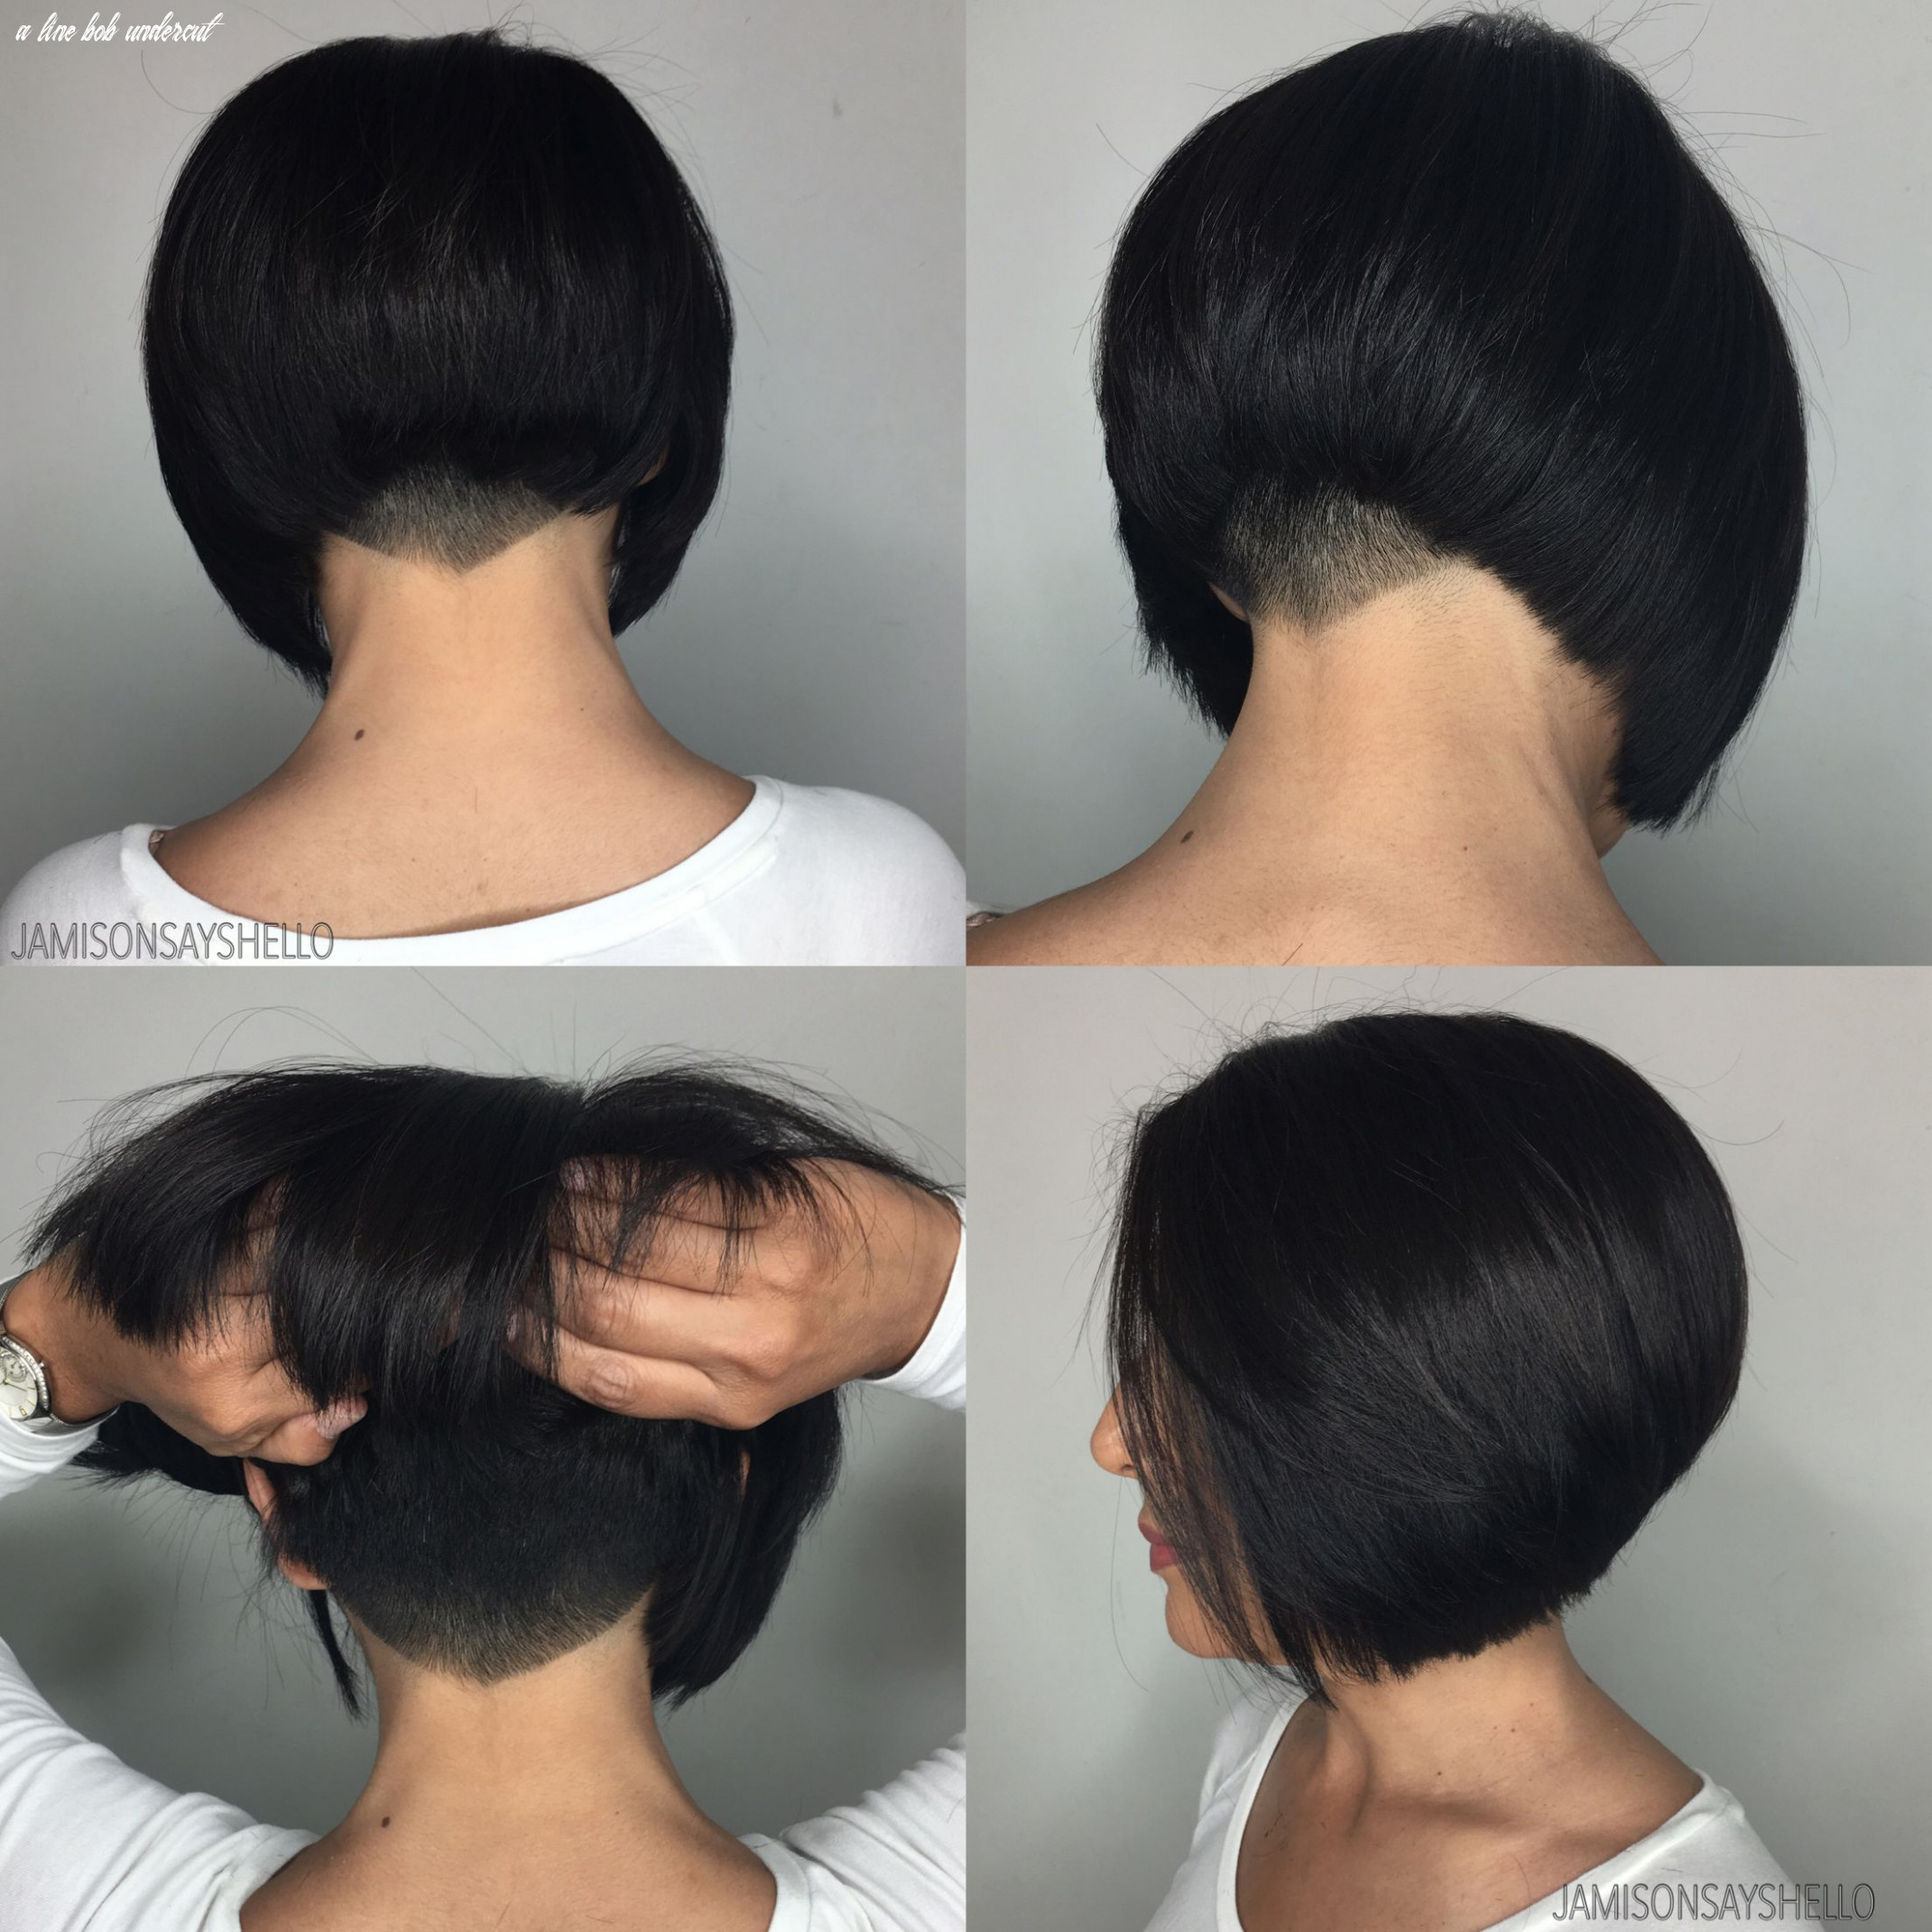 Pin on hair by jamison, owner of hair magic in chino hills, ca a line bob undercut